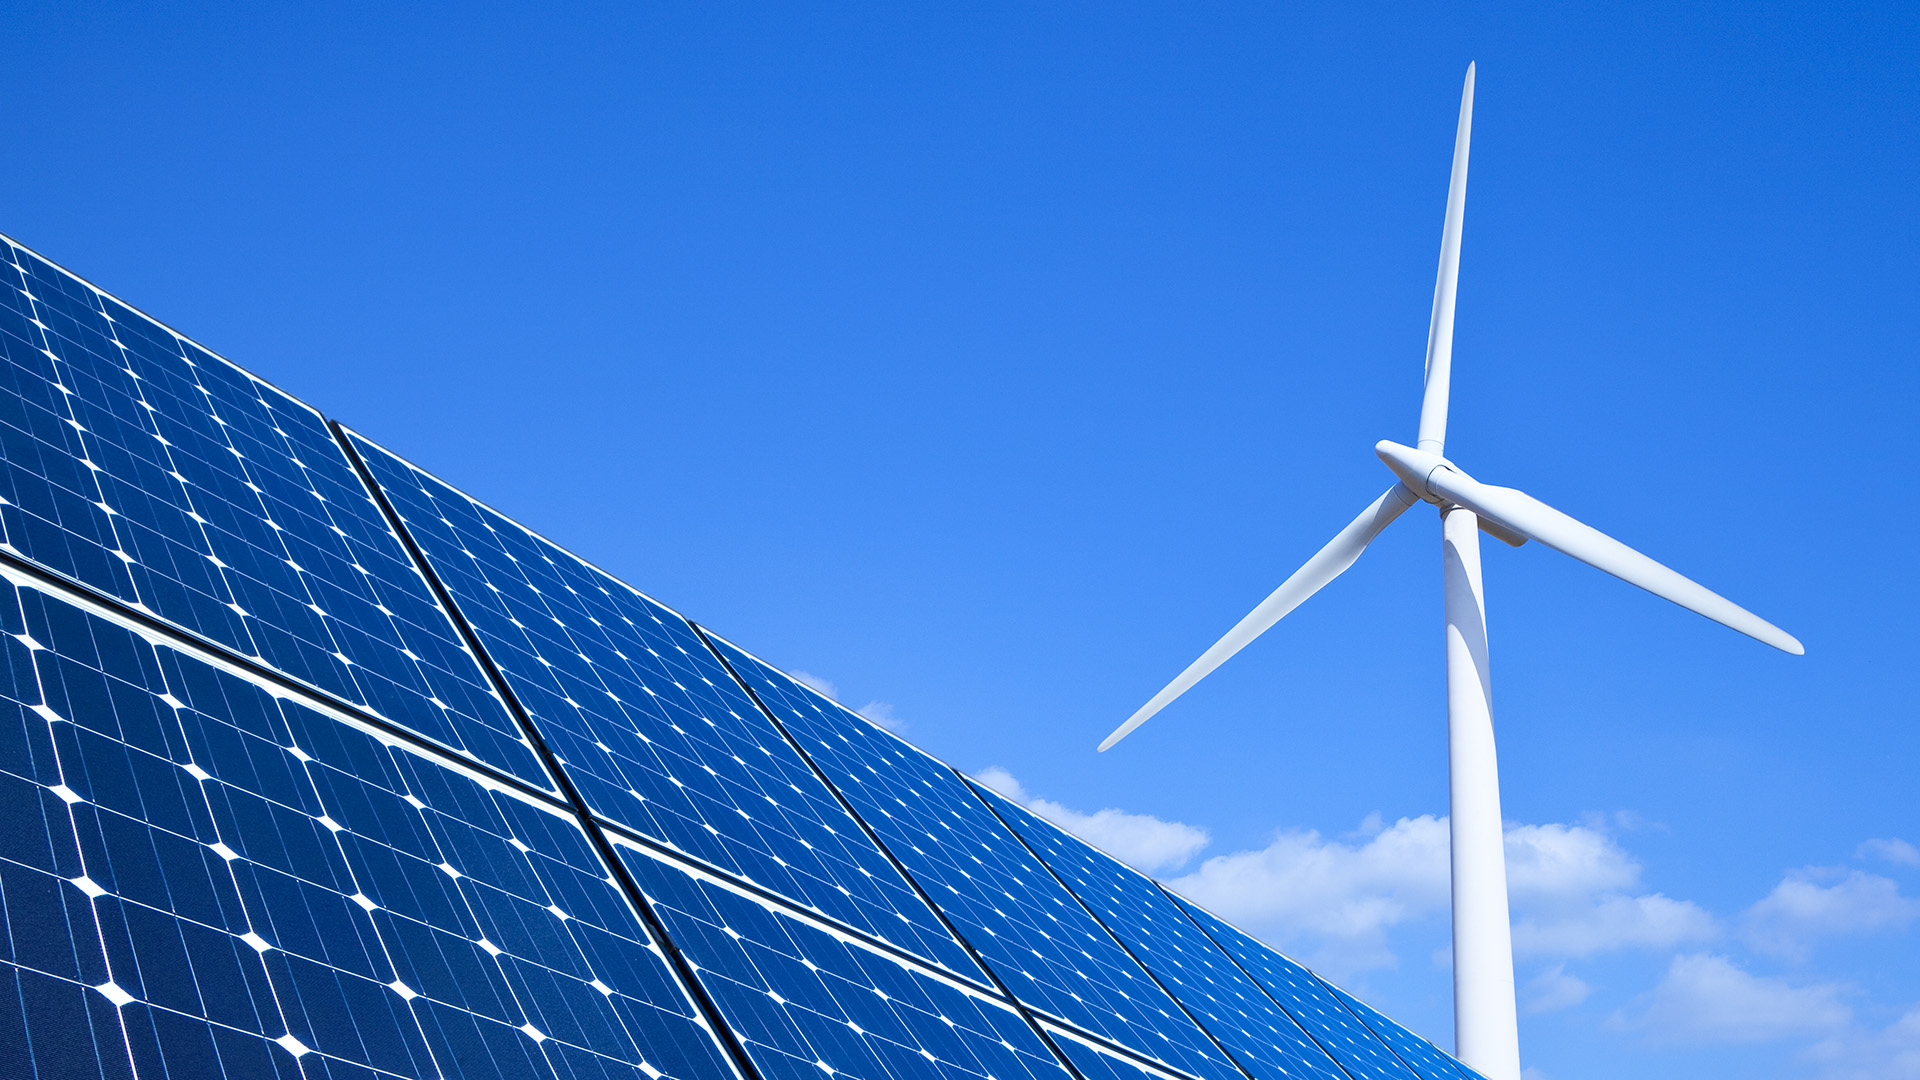 Climate change and sustainability disputes: Energy sector perspectives